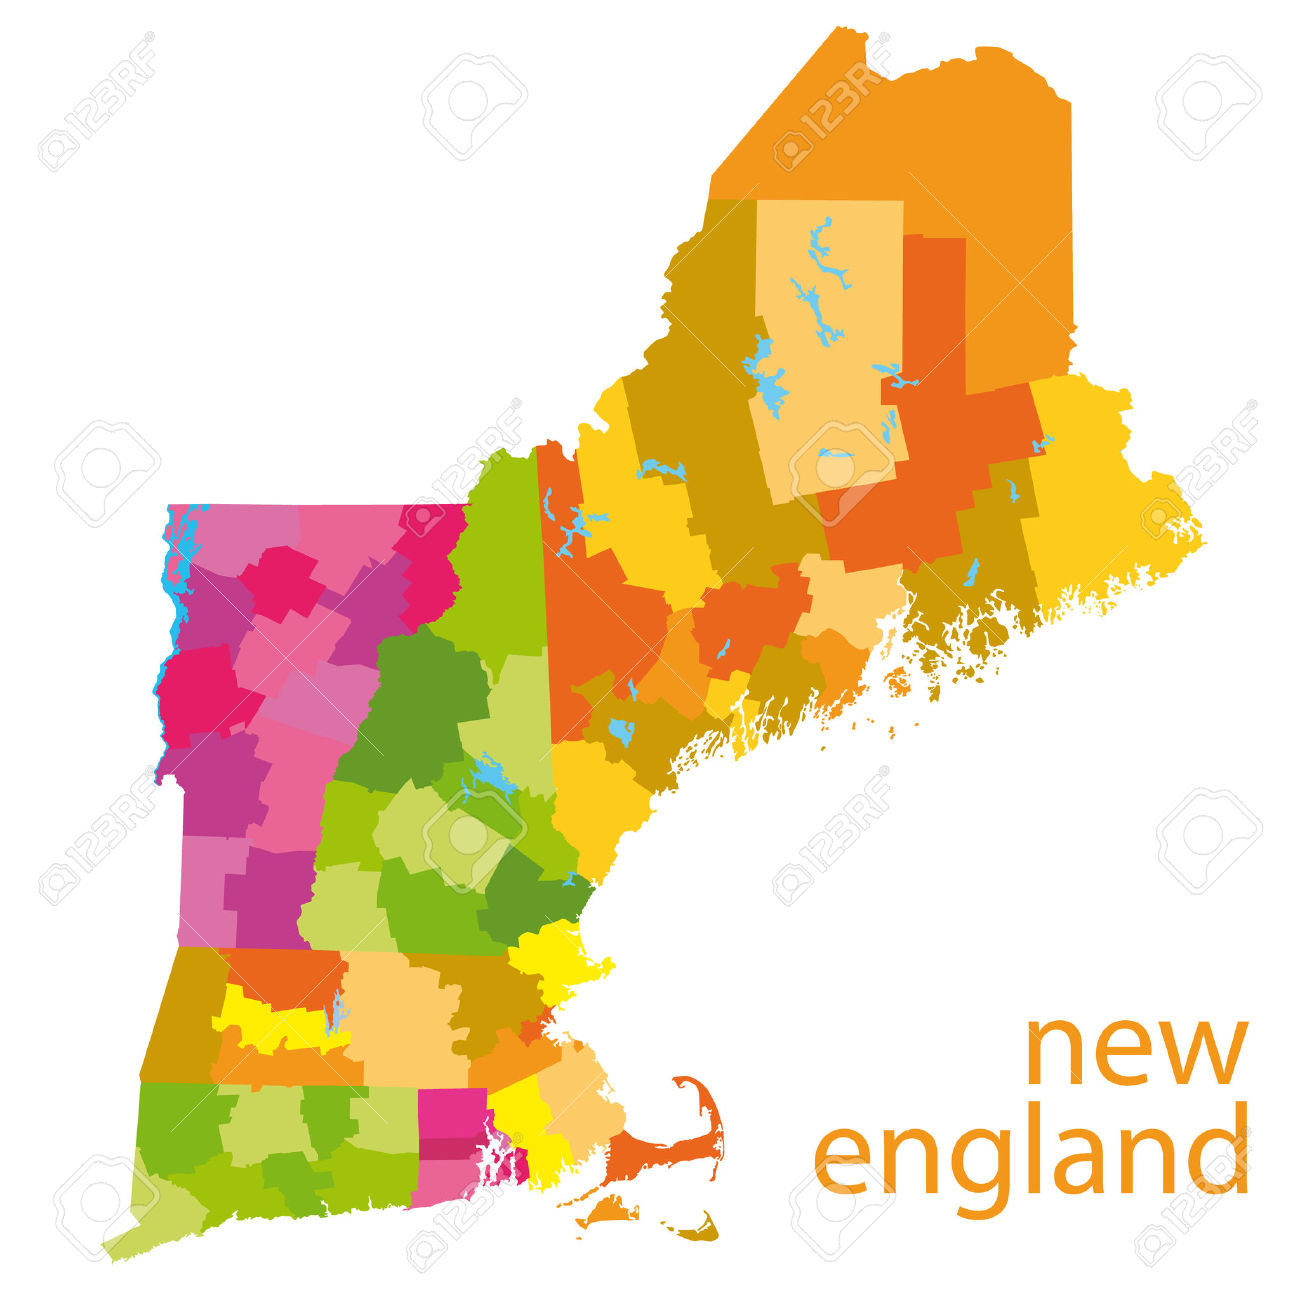 New England Map Royalty Free Cliparts, Vectors, And Stock.